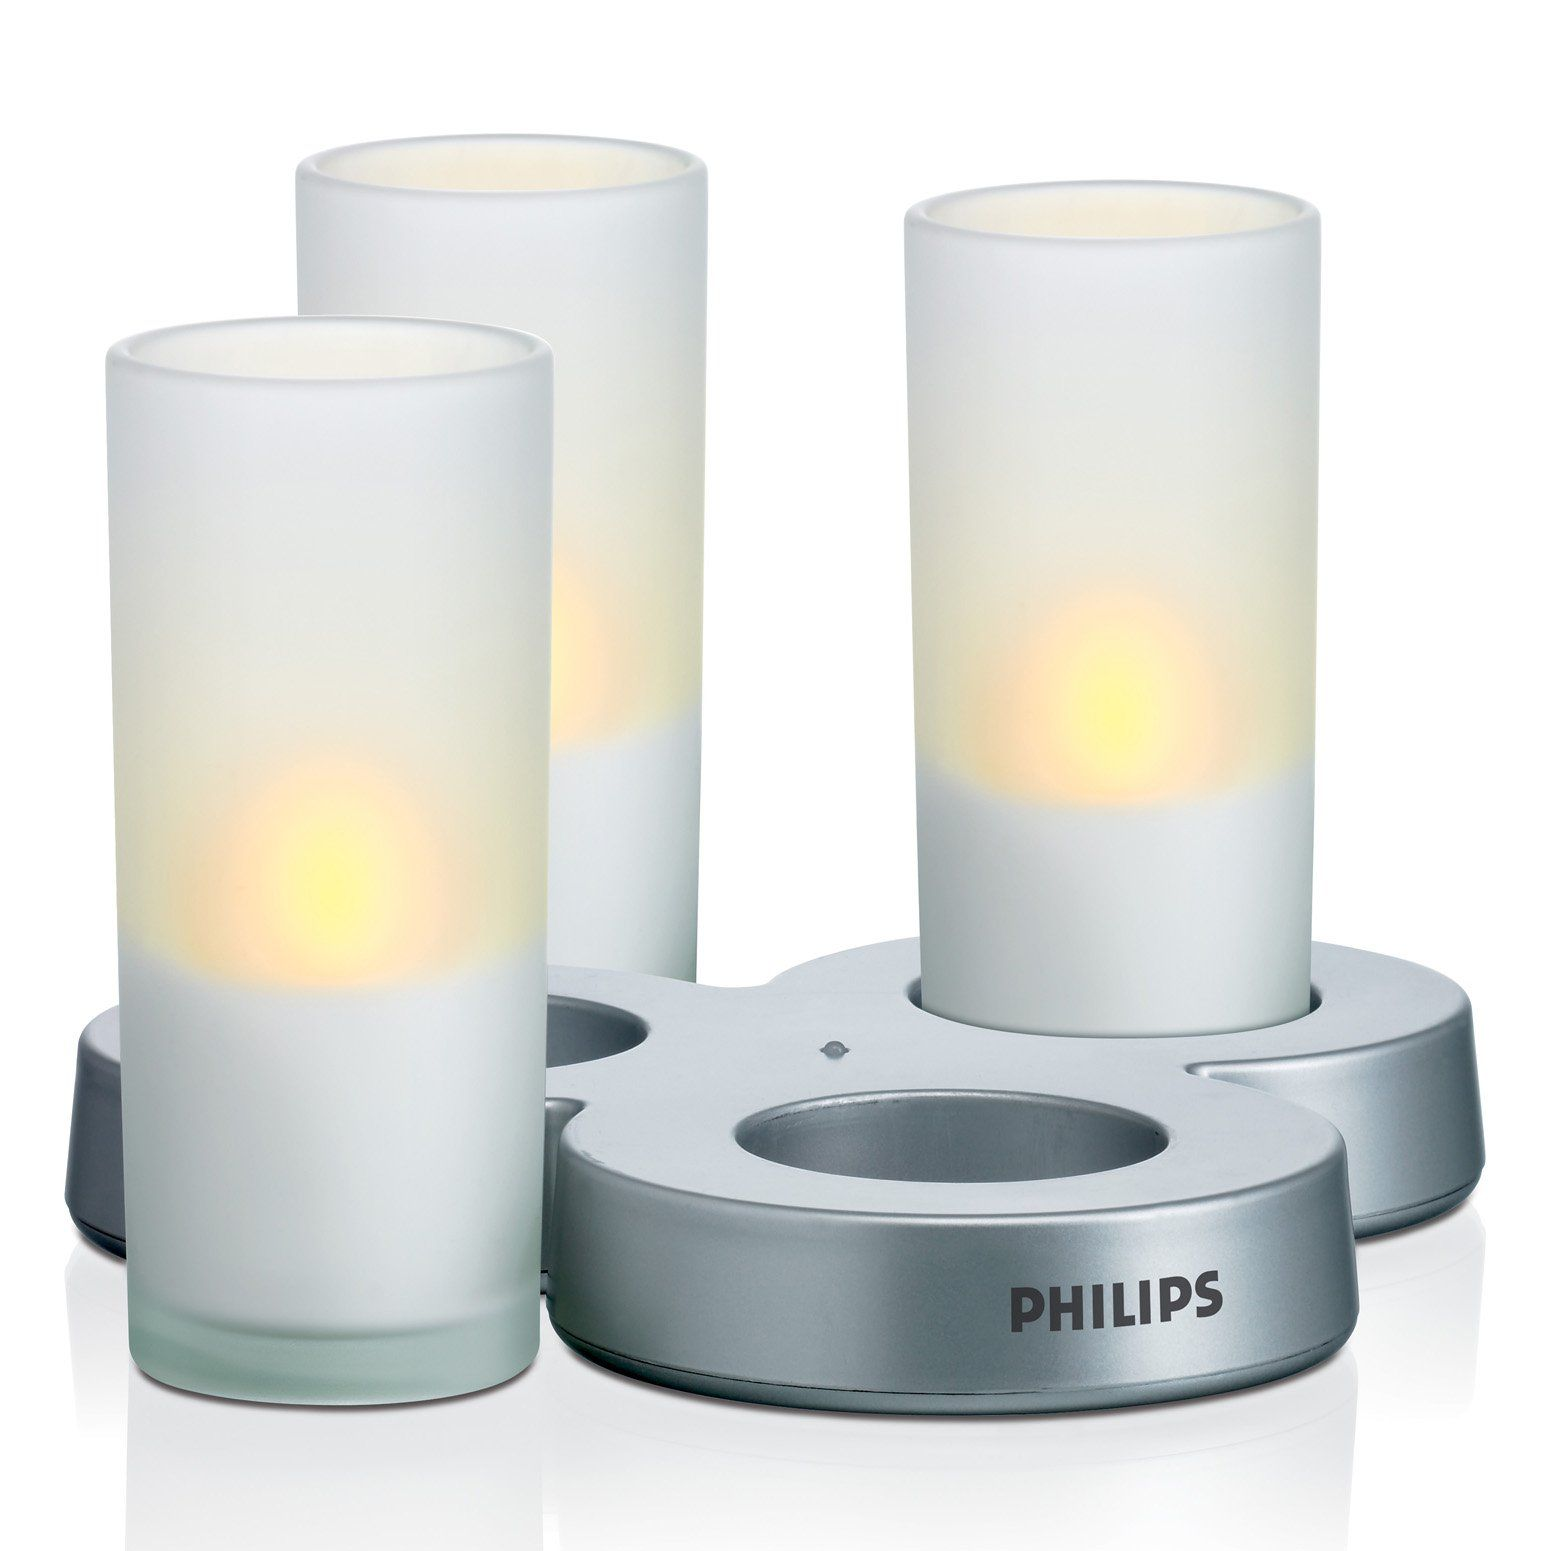 Philips 691086048 Home Lighting Accessories Imageo CandleLights ...